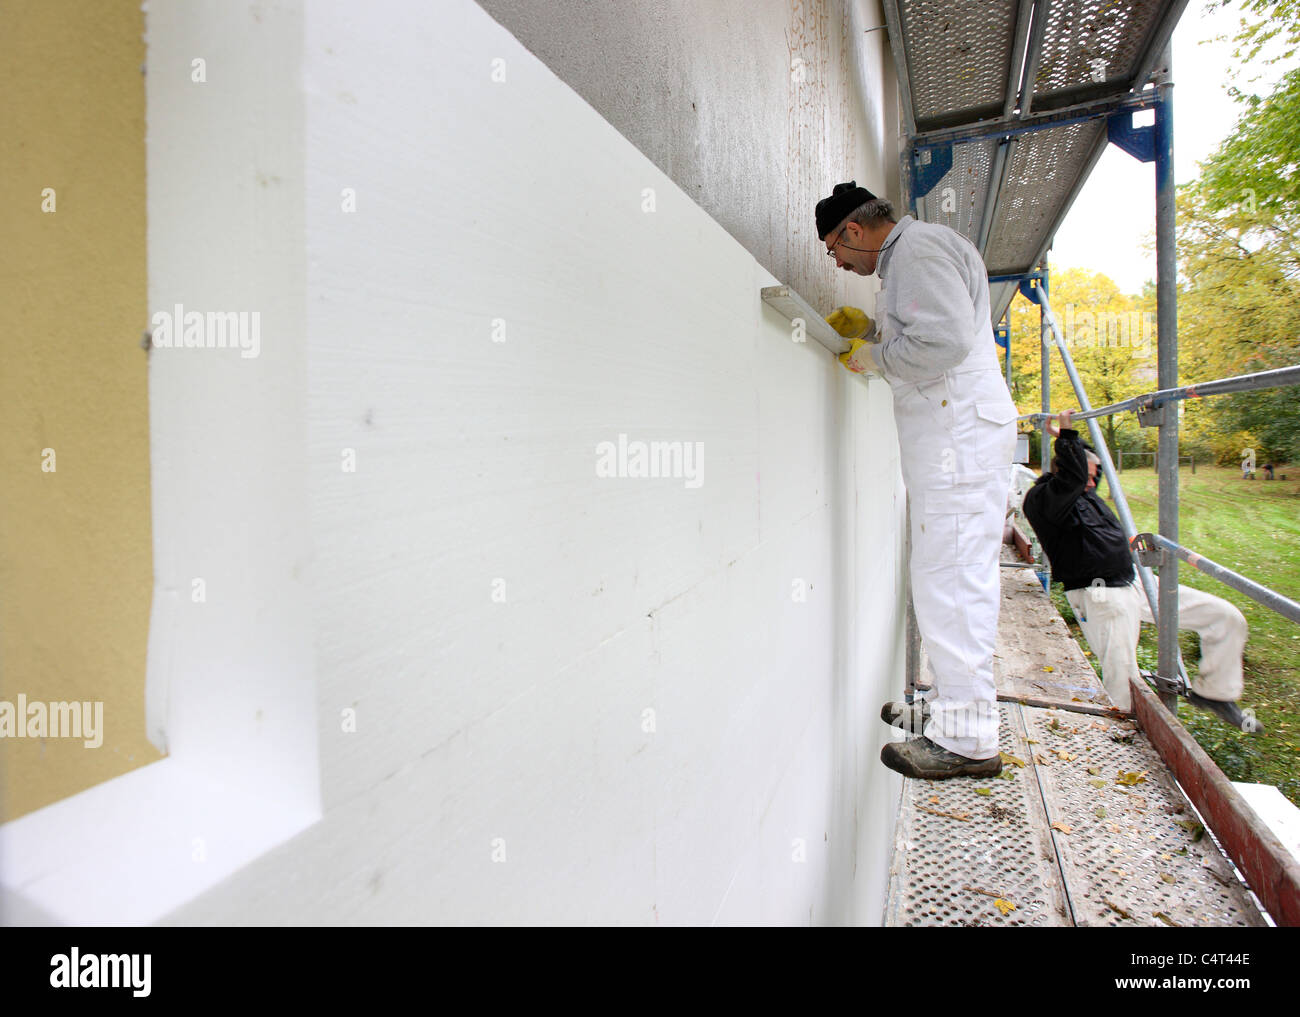 Heat insulation of a building. For saving energy, Styrofoam panels are sticked to the outside wall, to keep the - Stock Image